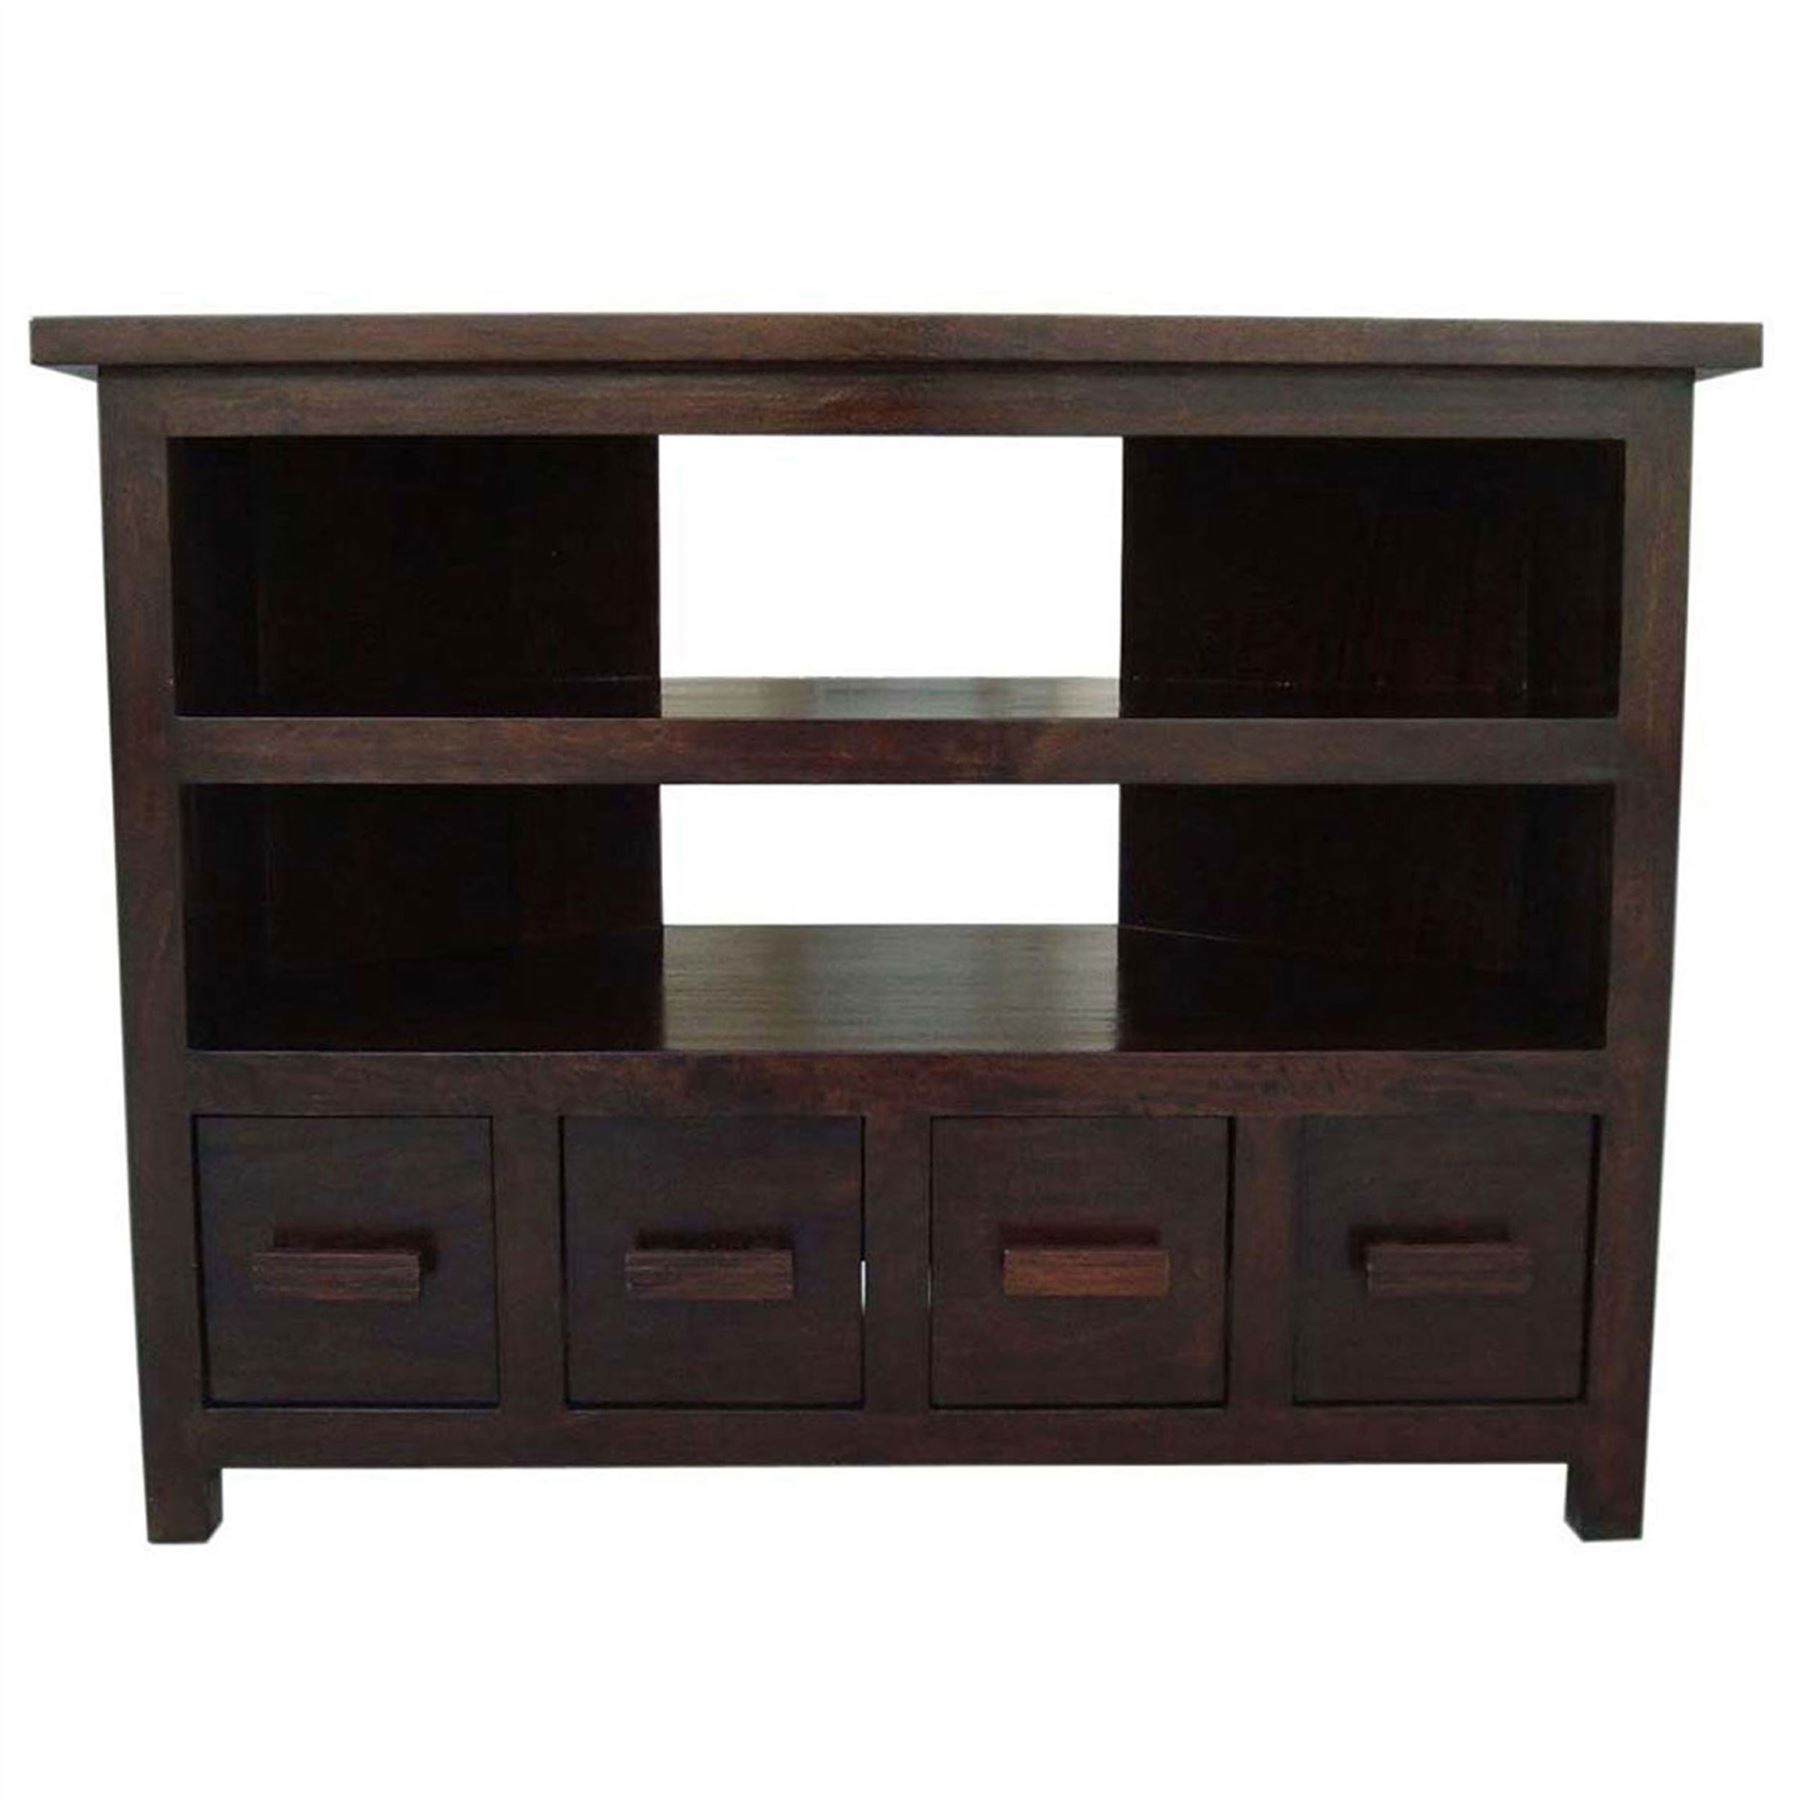 Bookcase Table Mangat Solid Dark Wood Indian Furniture Tv Unit Table Bookcase